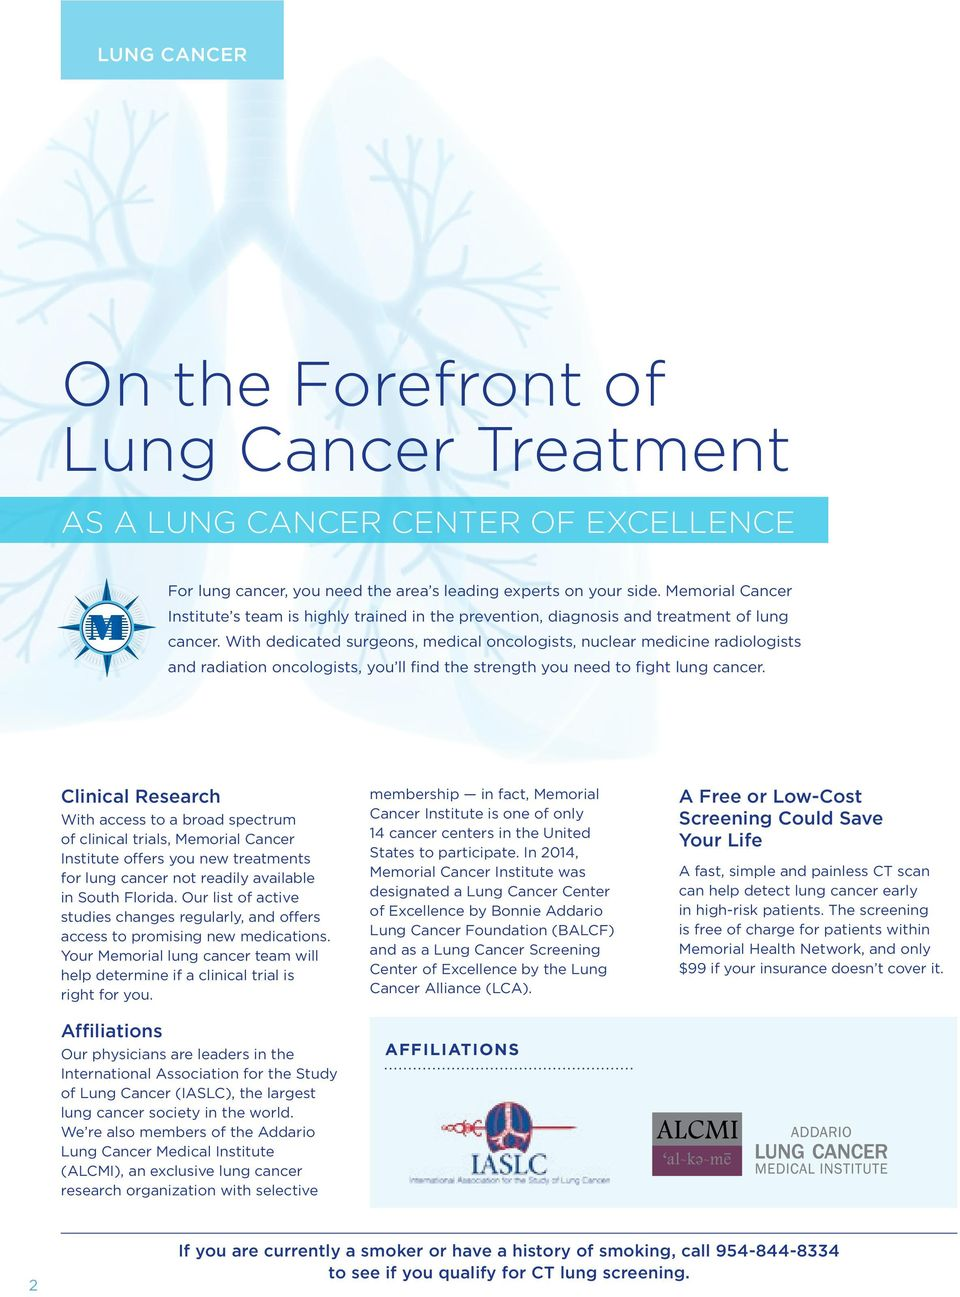 With dedicated surgeons, medical oncologists, nuclear medicine radiologists and radiation oncologists, you ll find the strength you need to fight lung cancer.